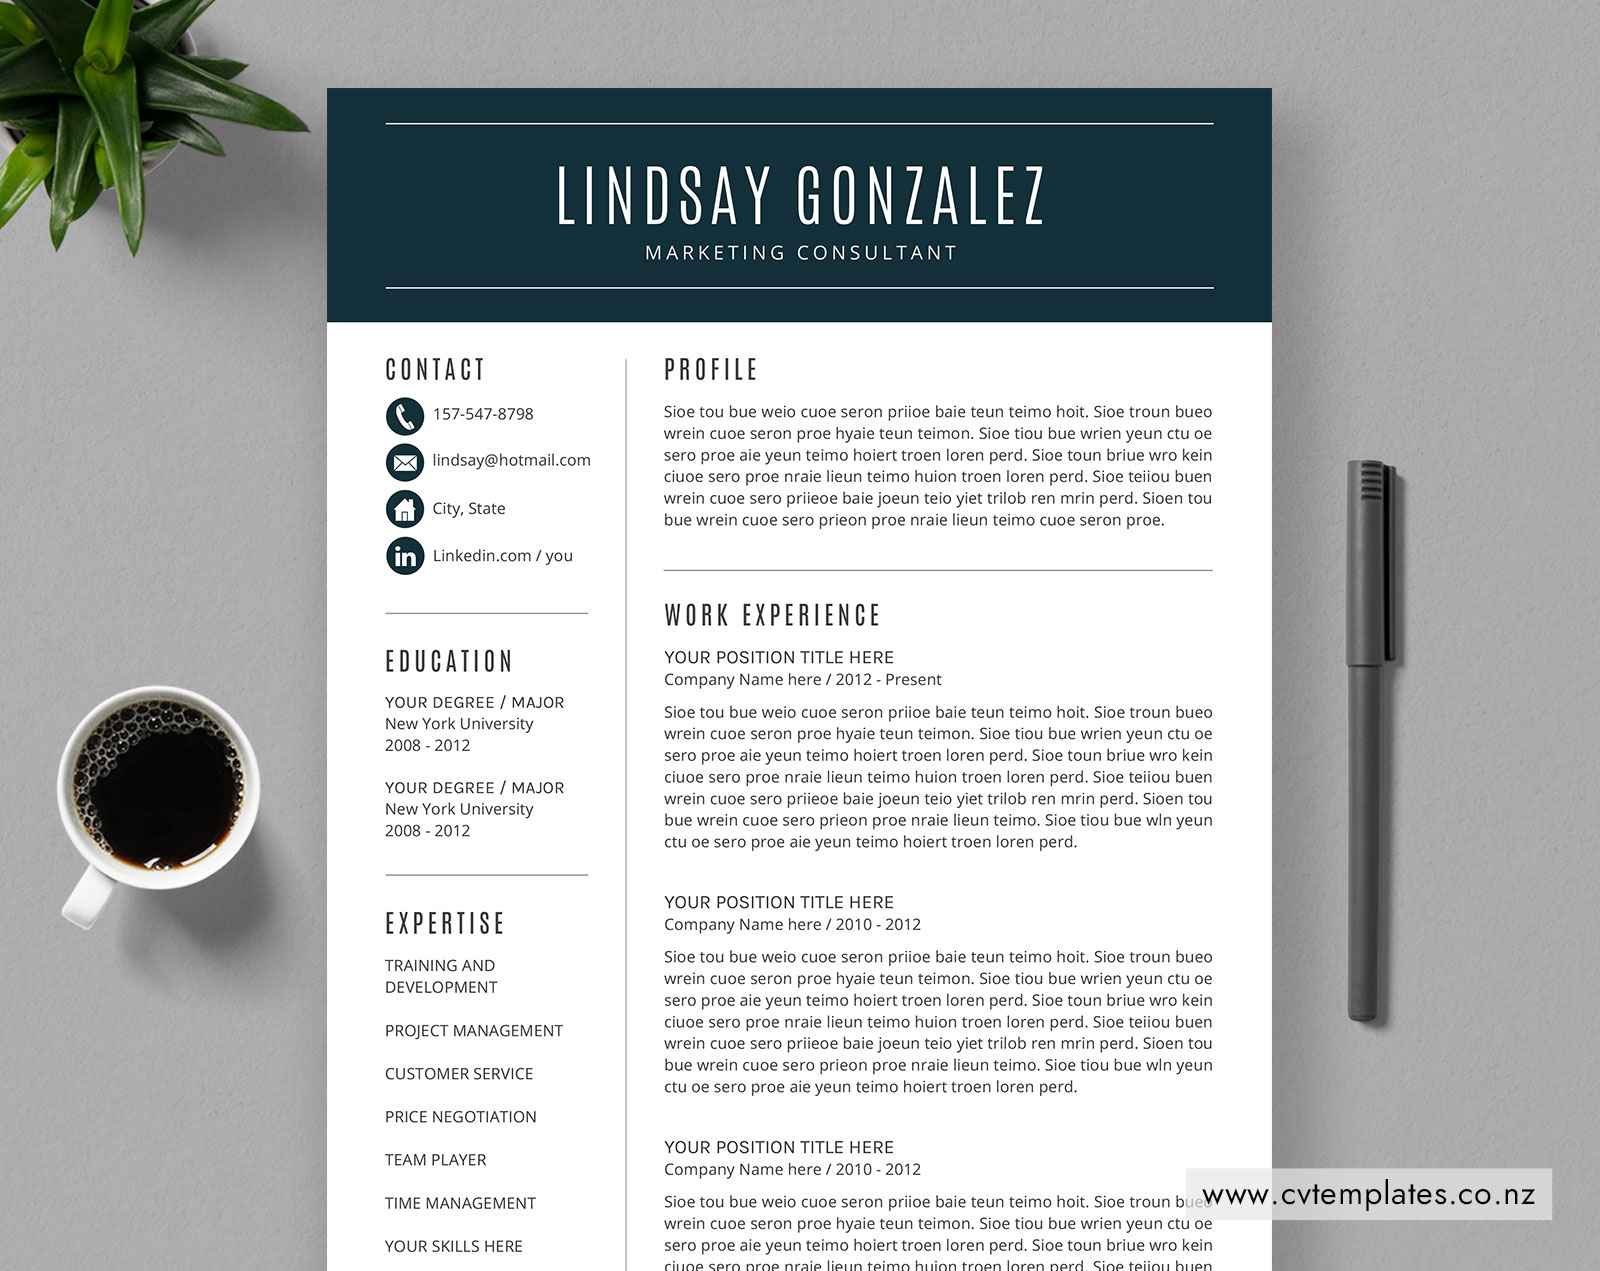 Cv Template For Ms Word Curriculum Vitae Editable Cv Template